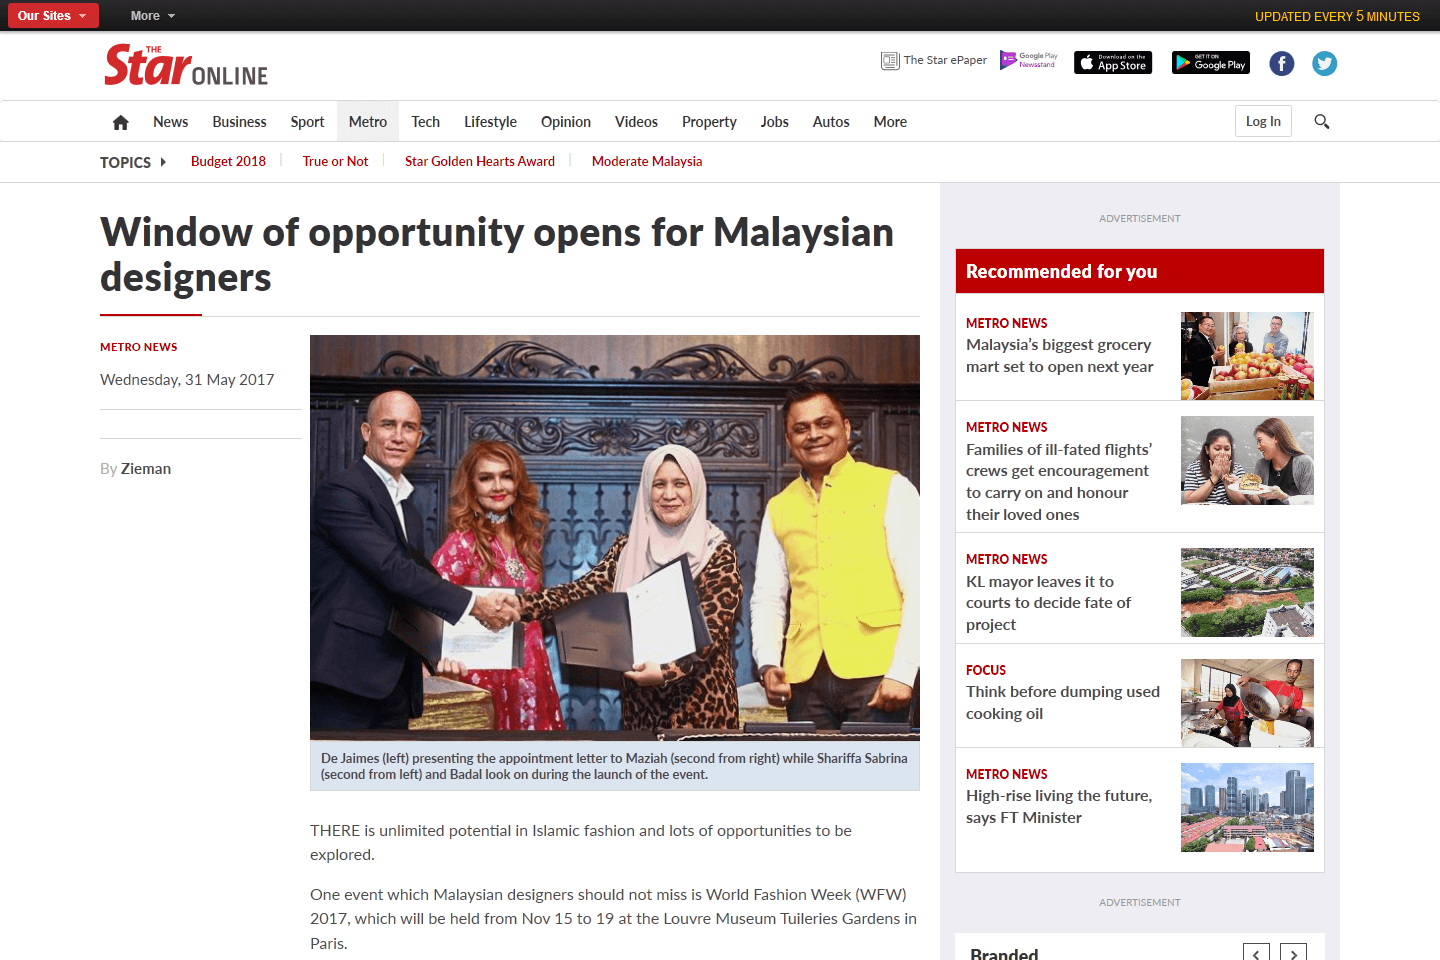 Window of opportunity opens for Malaysian designers